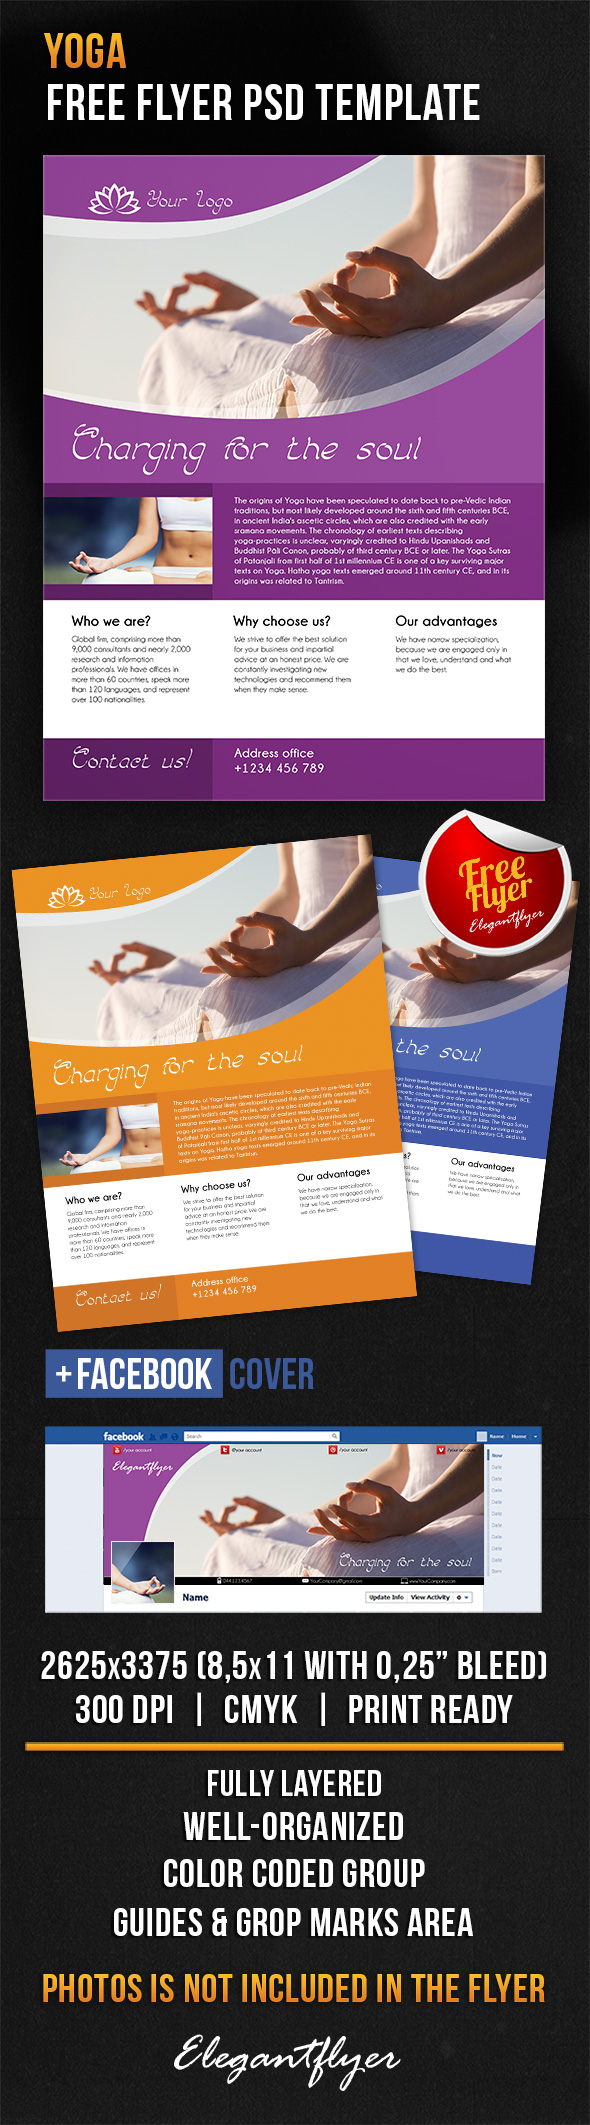 Yoga – Free Flyer PSD Template + Facebook Cover https://www ...